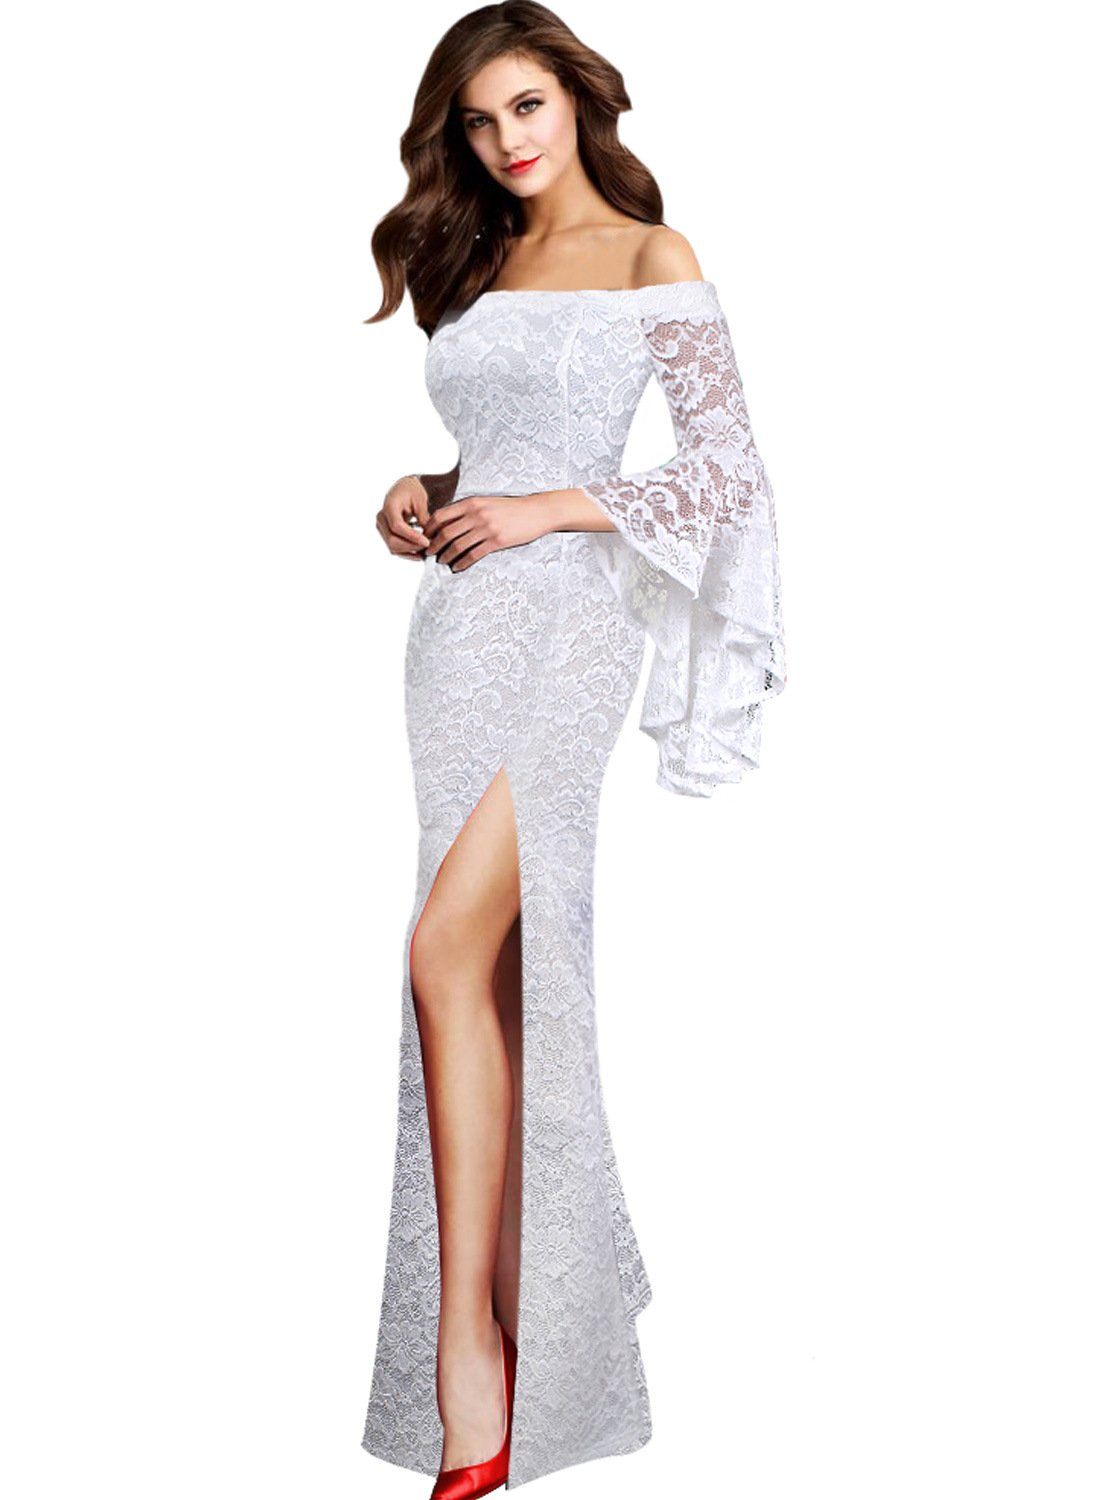 VFSHOW Womens Floral Lace Off Shoulder Bell Sleeve Formal Wedding Maxi Dress 002 WHT L by VFSHOW